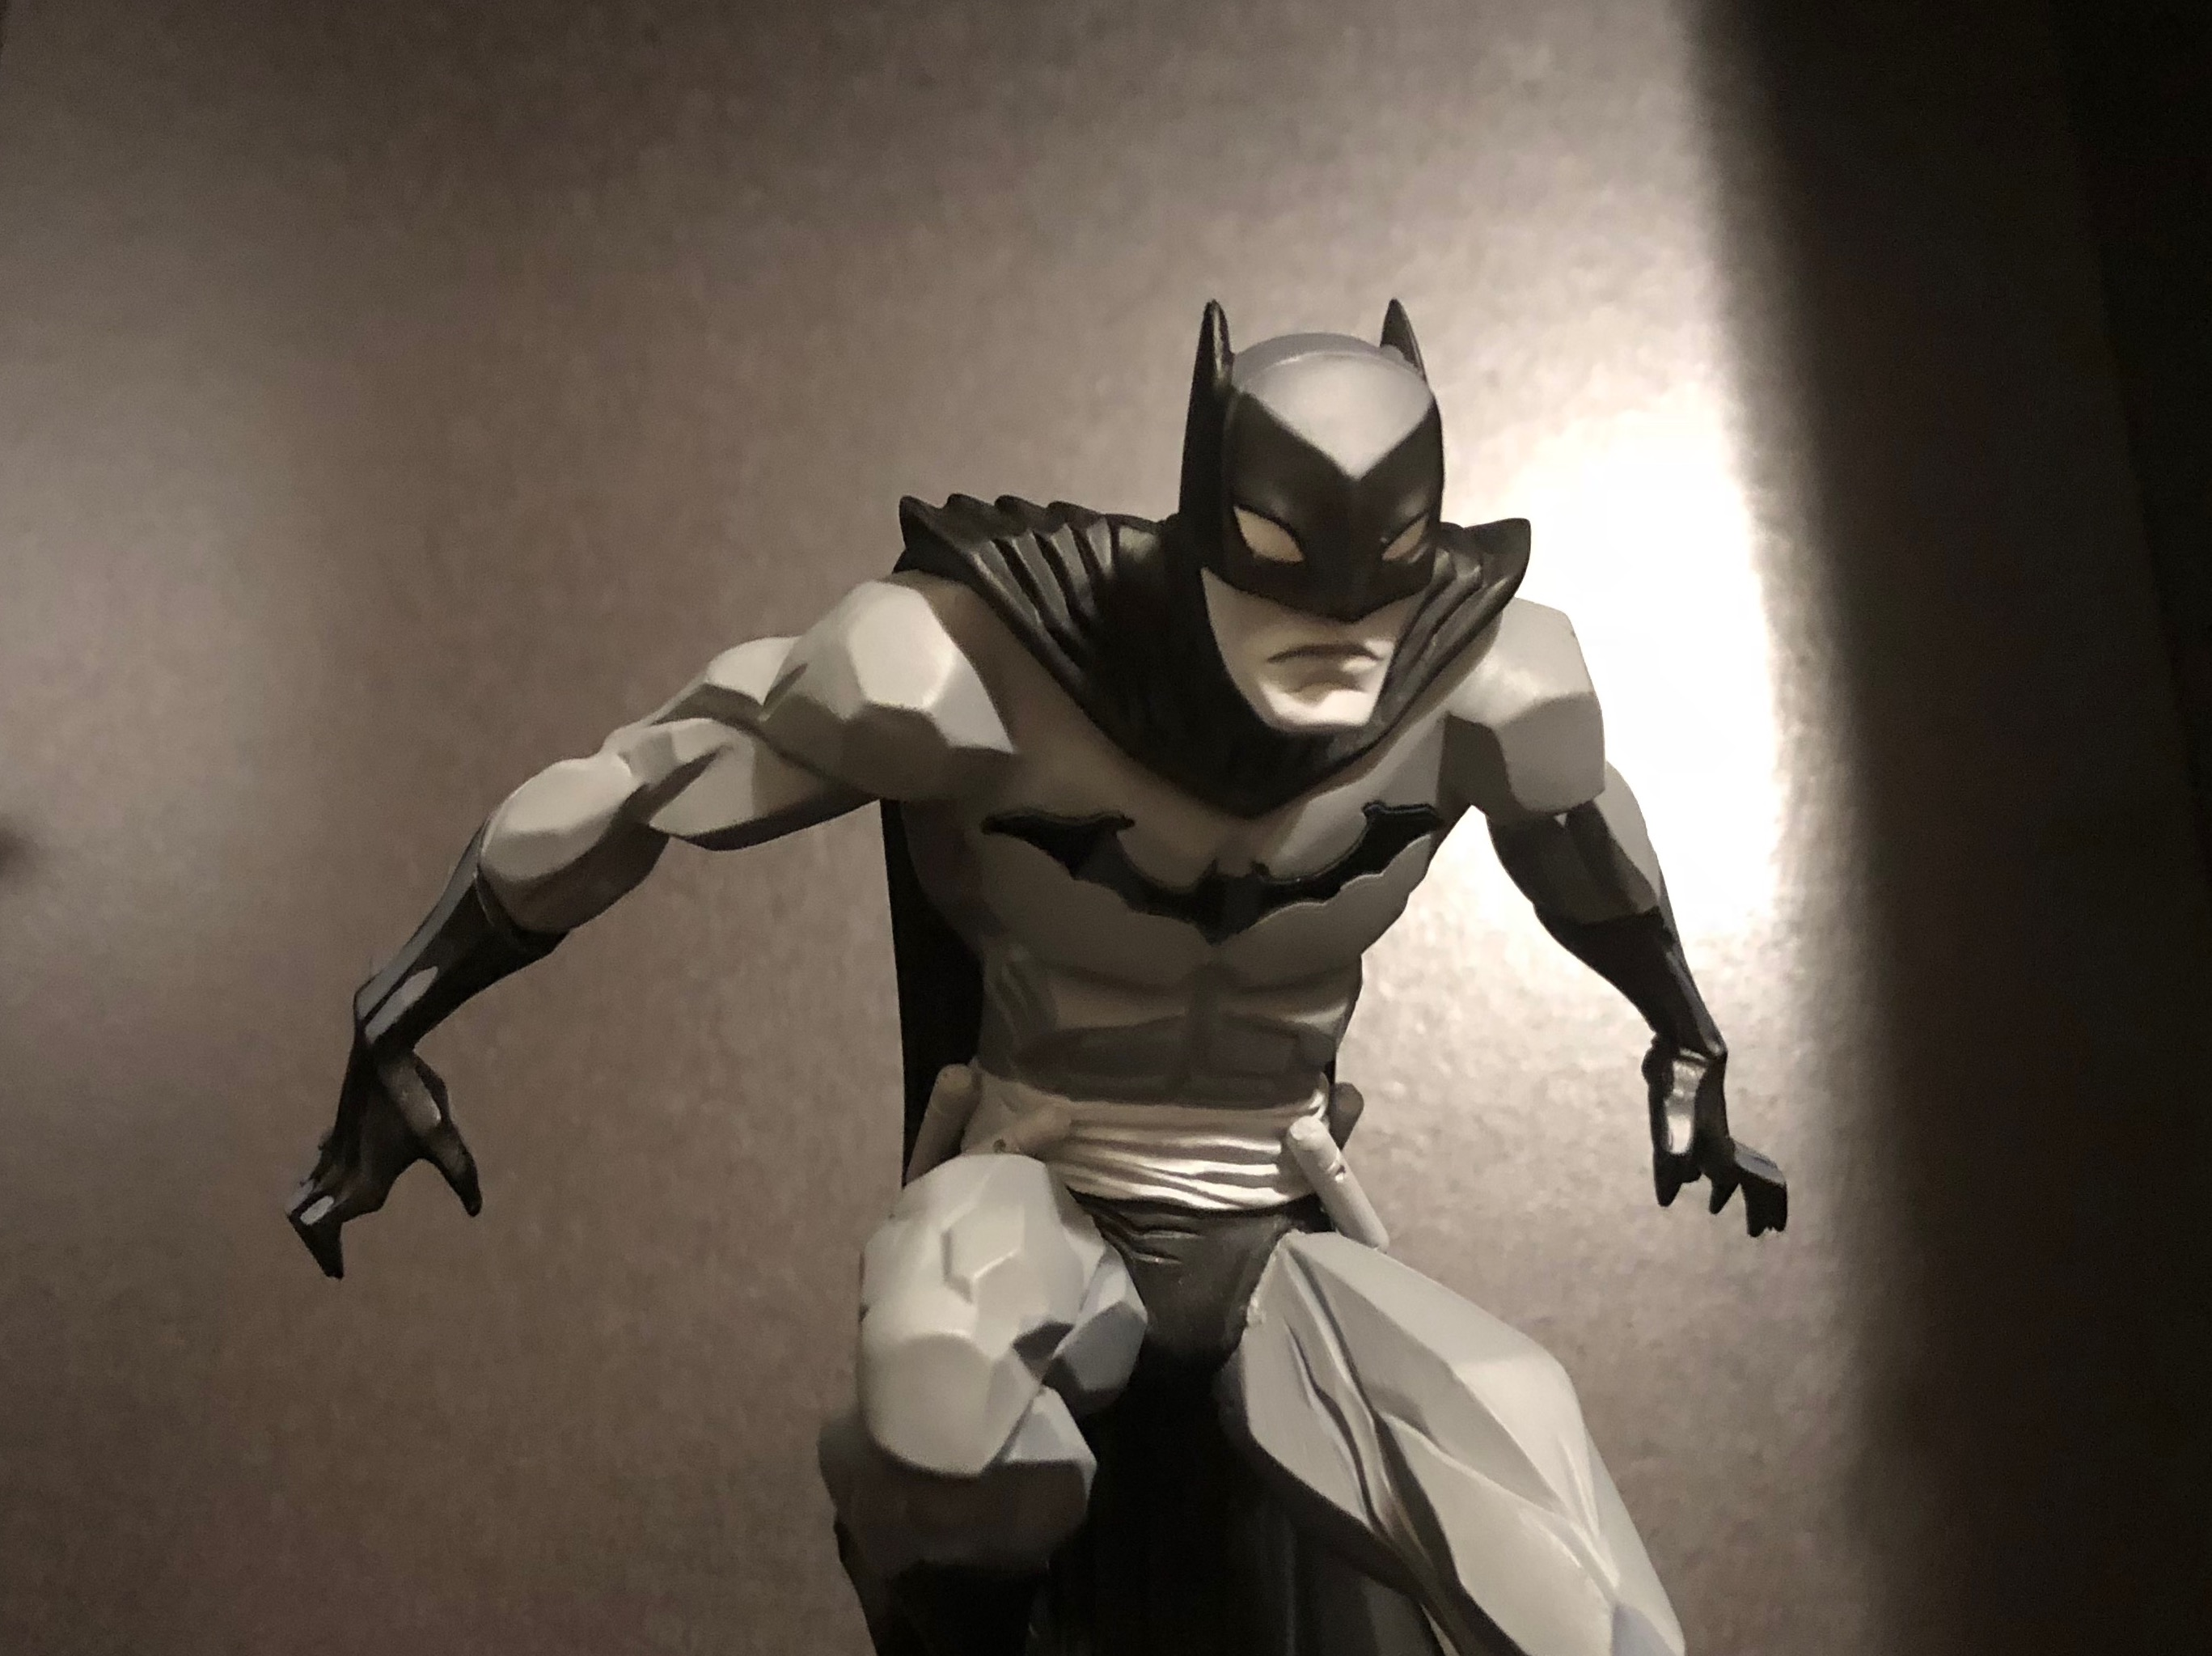 It has been nearly 10 months since I laid eyes on the amazing DC Collectibles Black & White: Batman statues at SDCC and today one has finally arrived for my private collection. These statues are impeccably designed, affordable, and incredibly display worthy. Check out the unboxing to see for yourself!